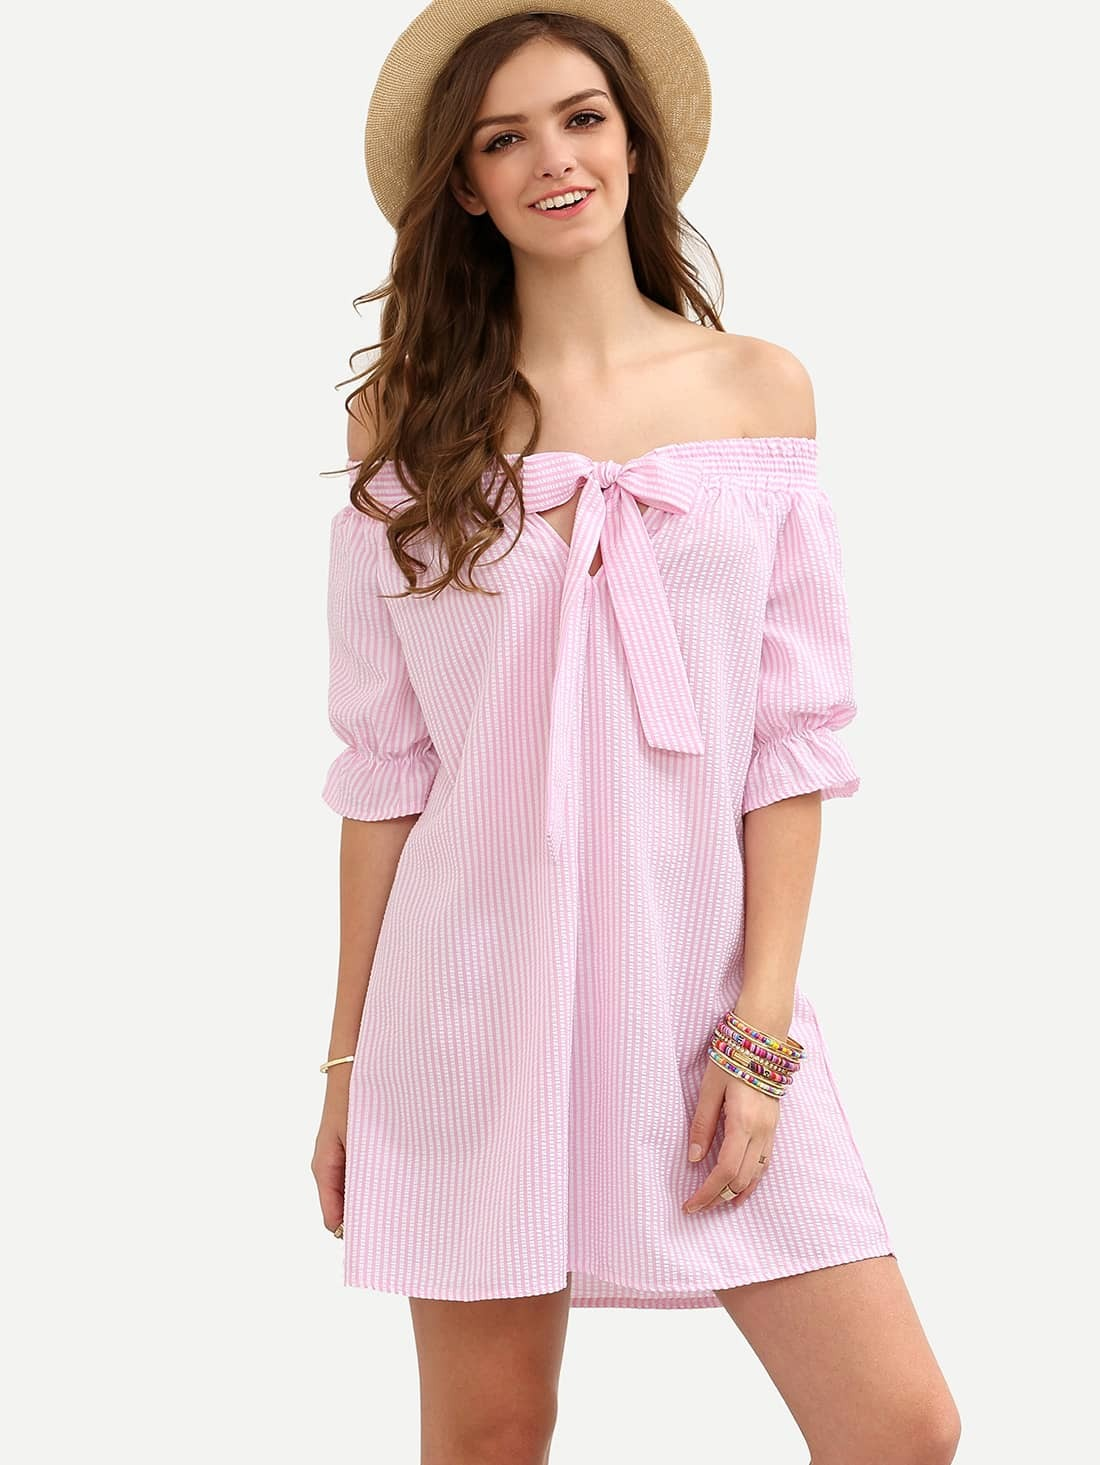 Pink Striped Bow Off The Shoulder Shift Dress dress160602528